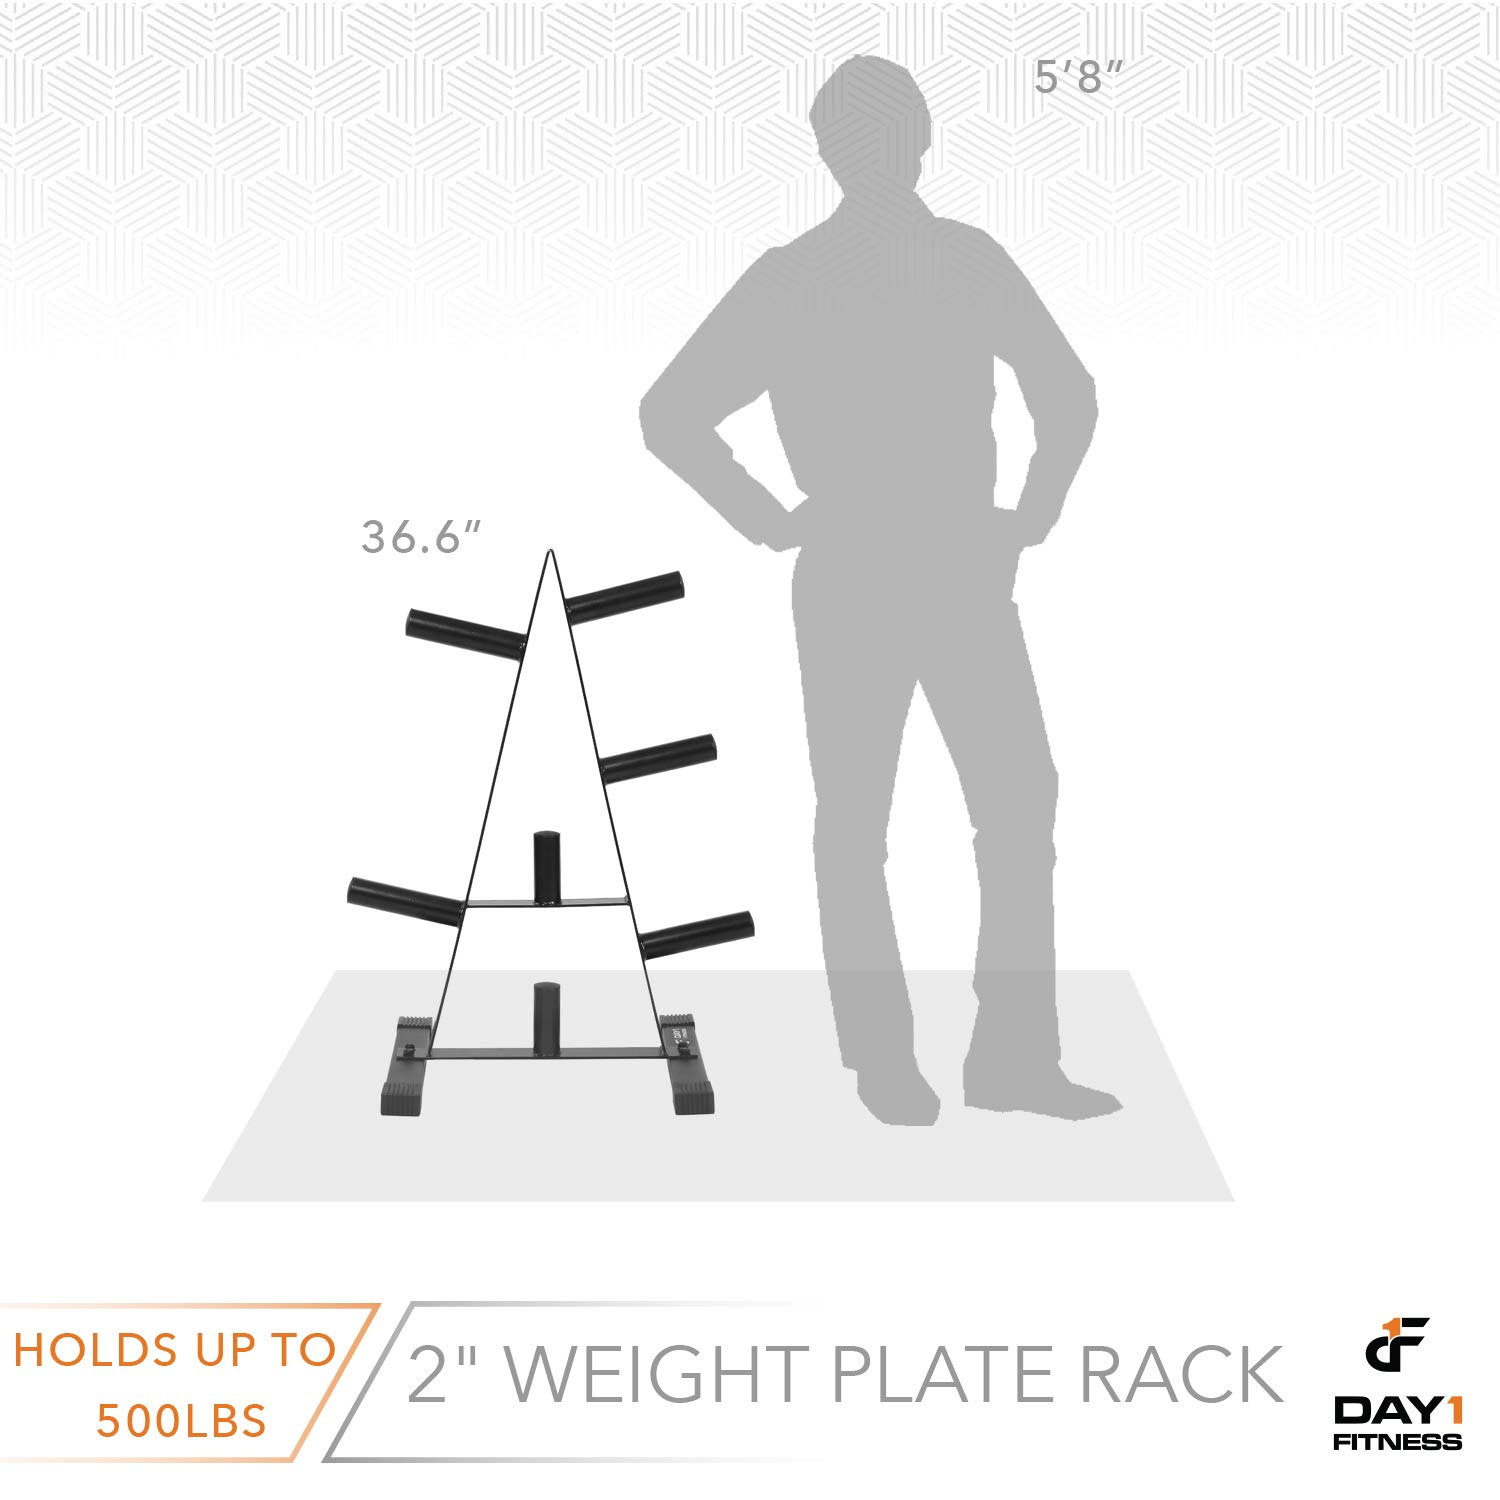 Olympic Weight Plate Rack, Holds up to 500lb of 2'' Weights by D1F - Black Weight Holder Tree with 7 Branches for Stacking and Storing High Capacity Weights- Heavy-Duty, Durable Triangle Plate Racks by Day 1 Fitness (Image #3)